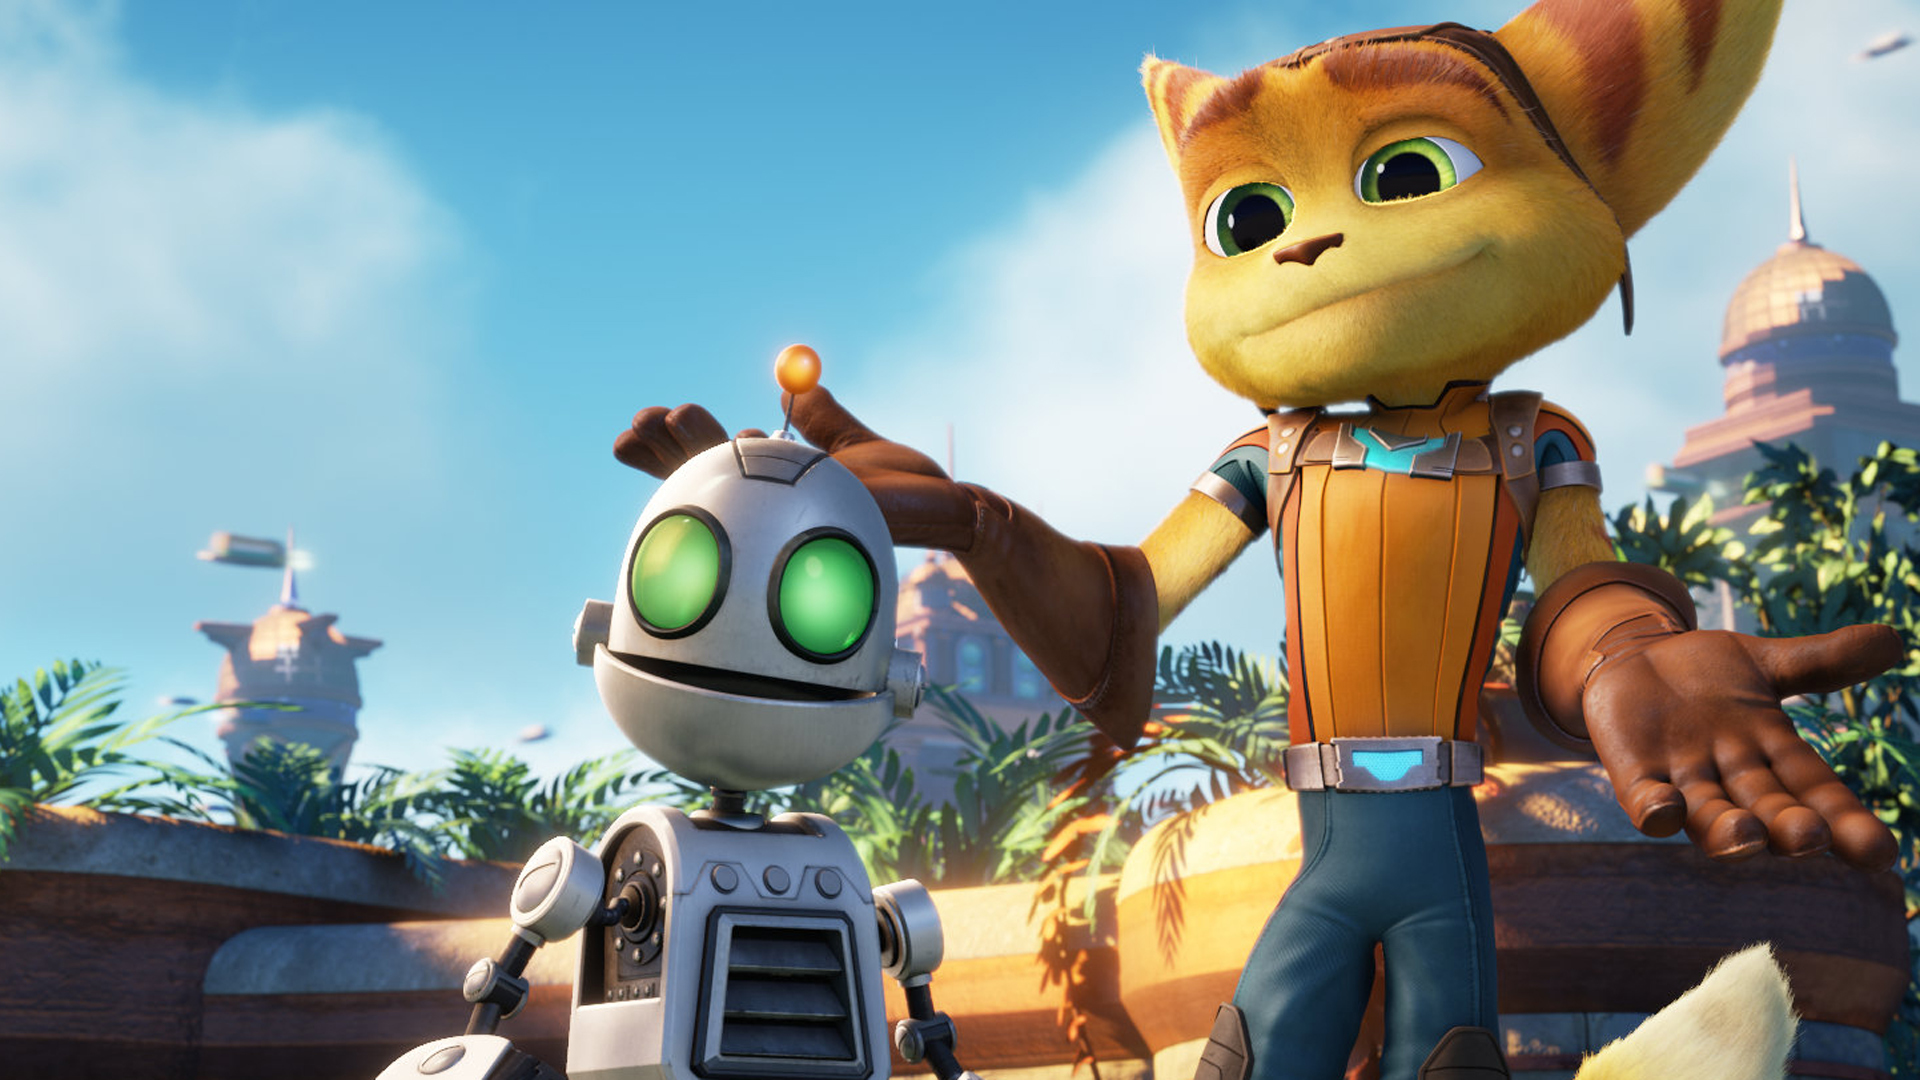 Trailer gameverfilming 'Ratchet & Clank'